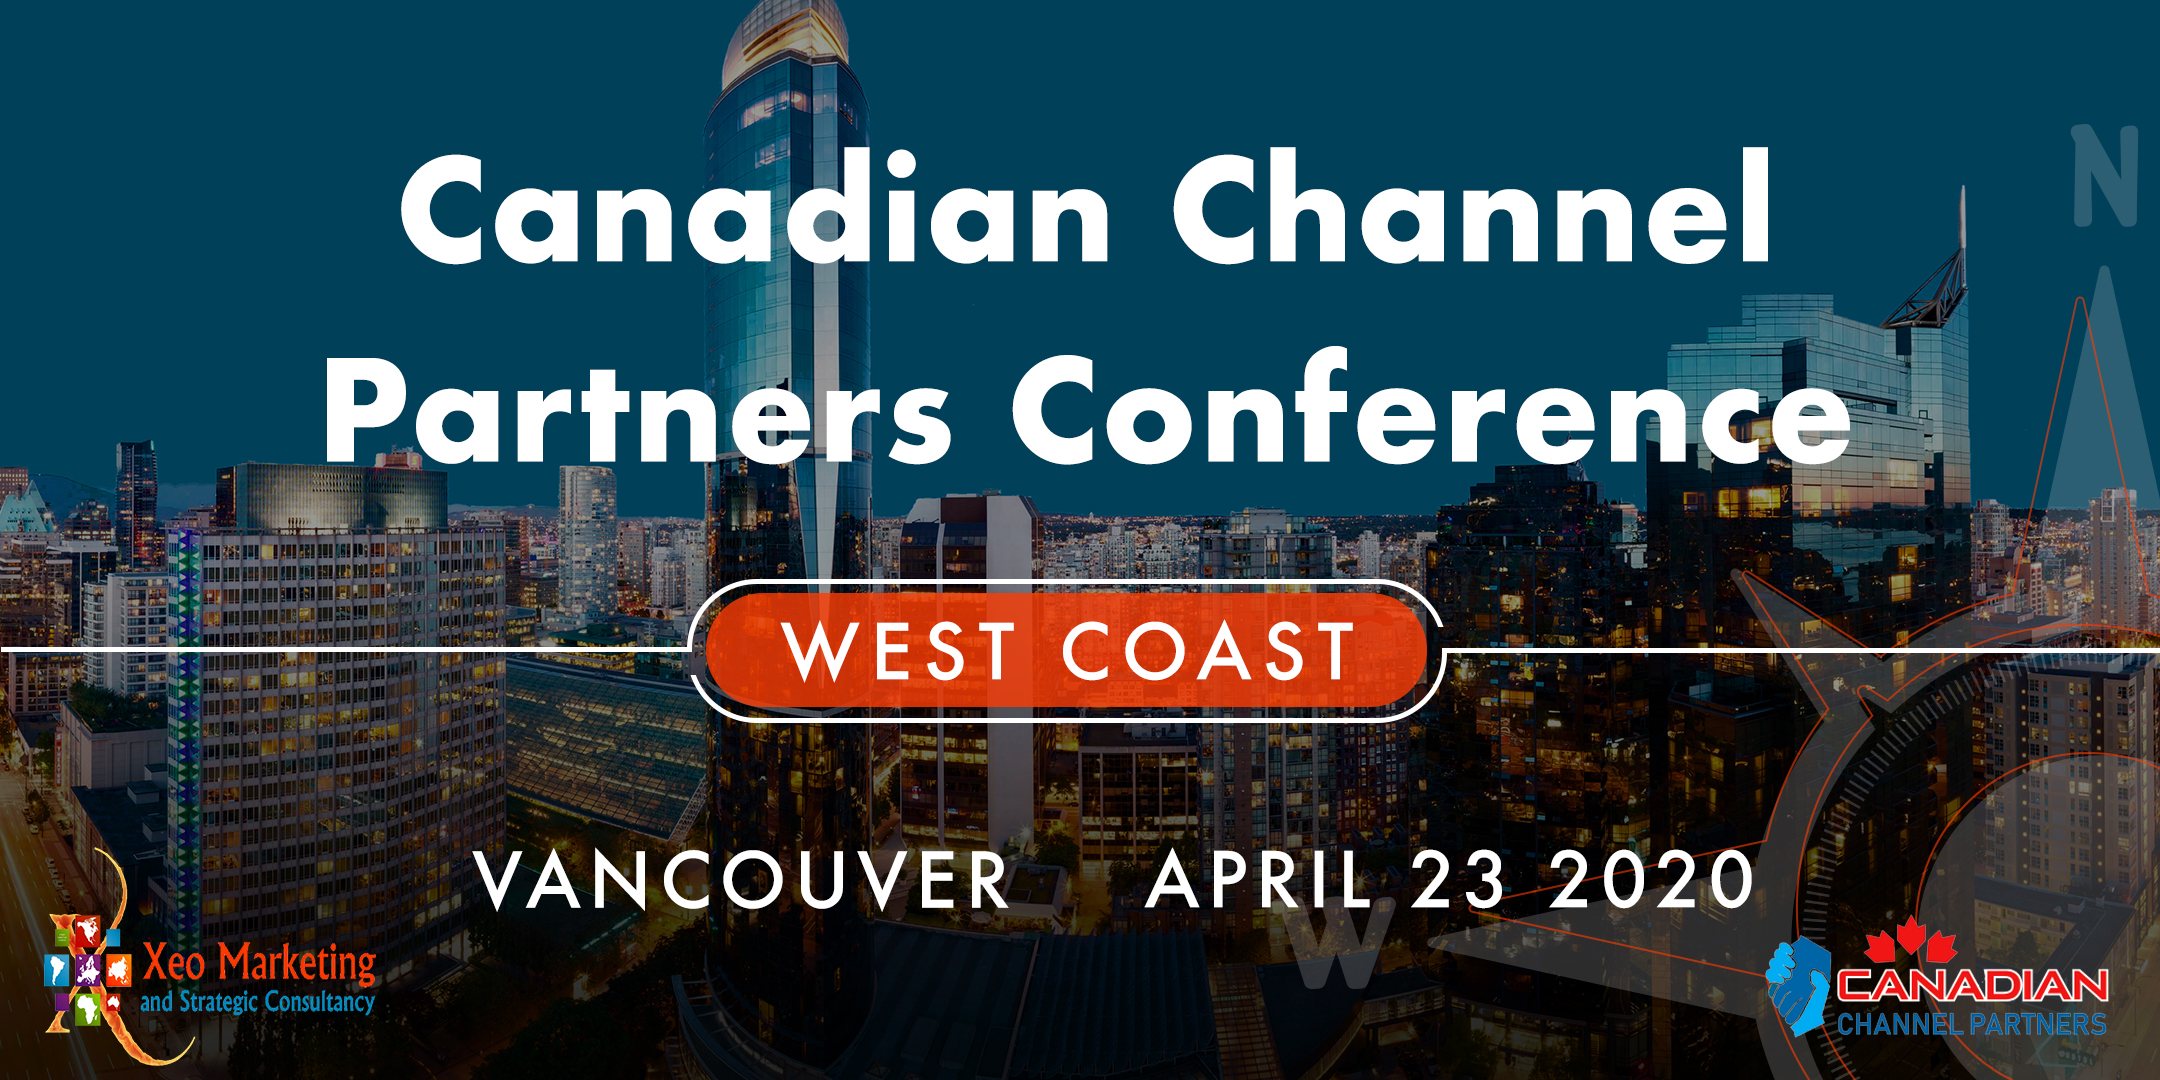 Canadian Channel Partners Take The Conference to Vancouver